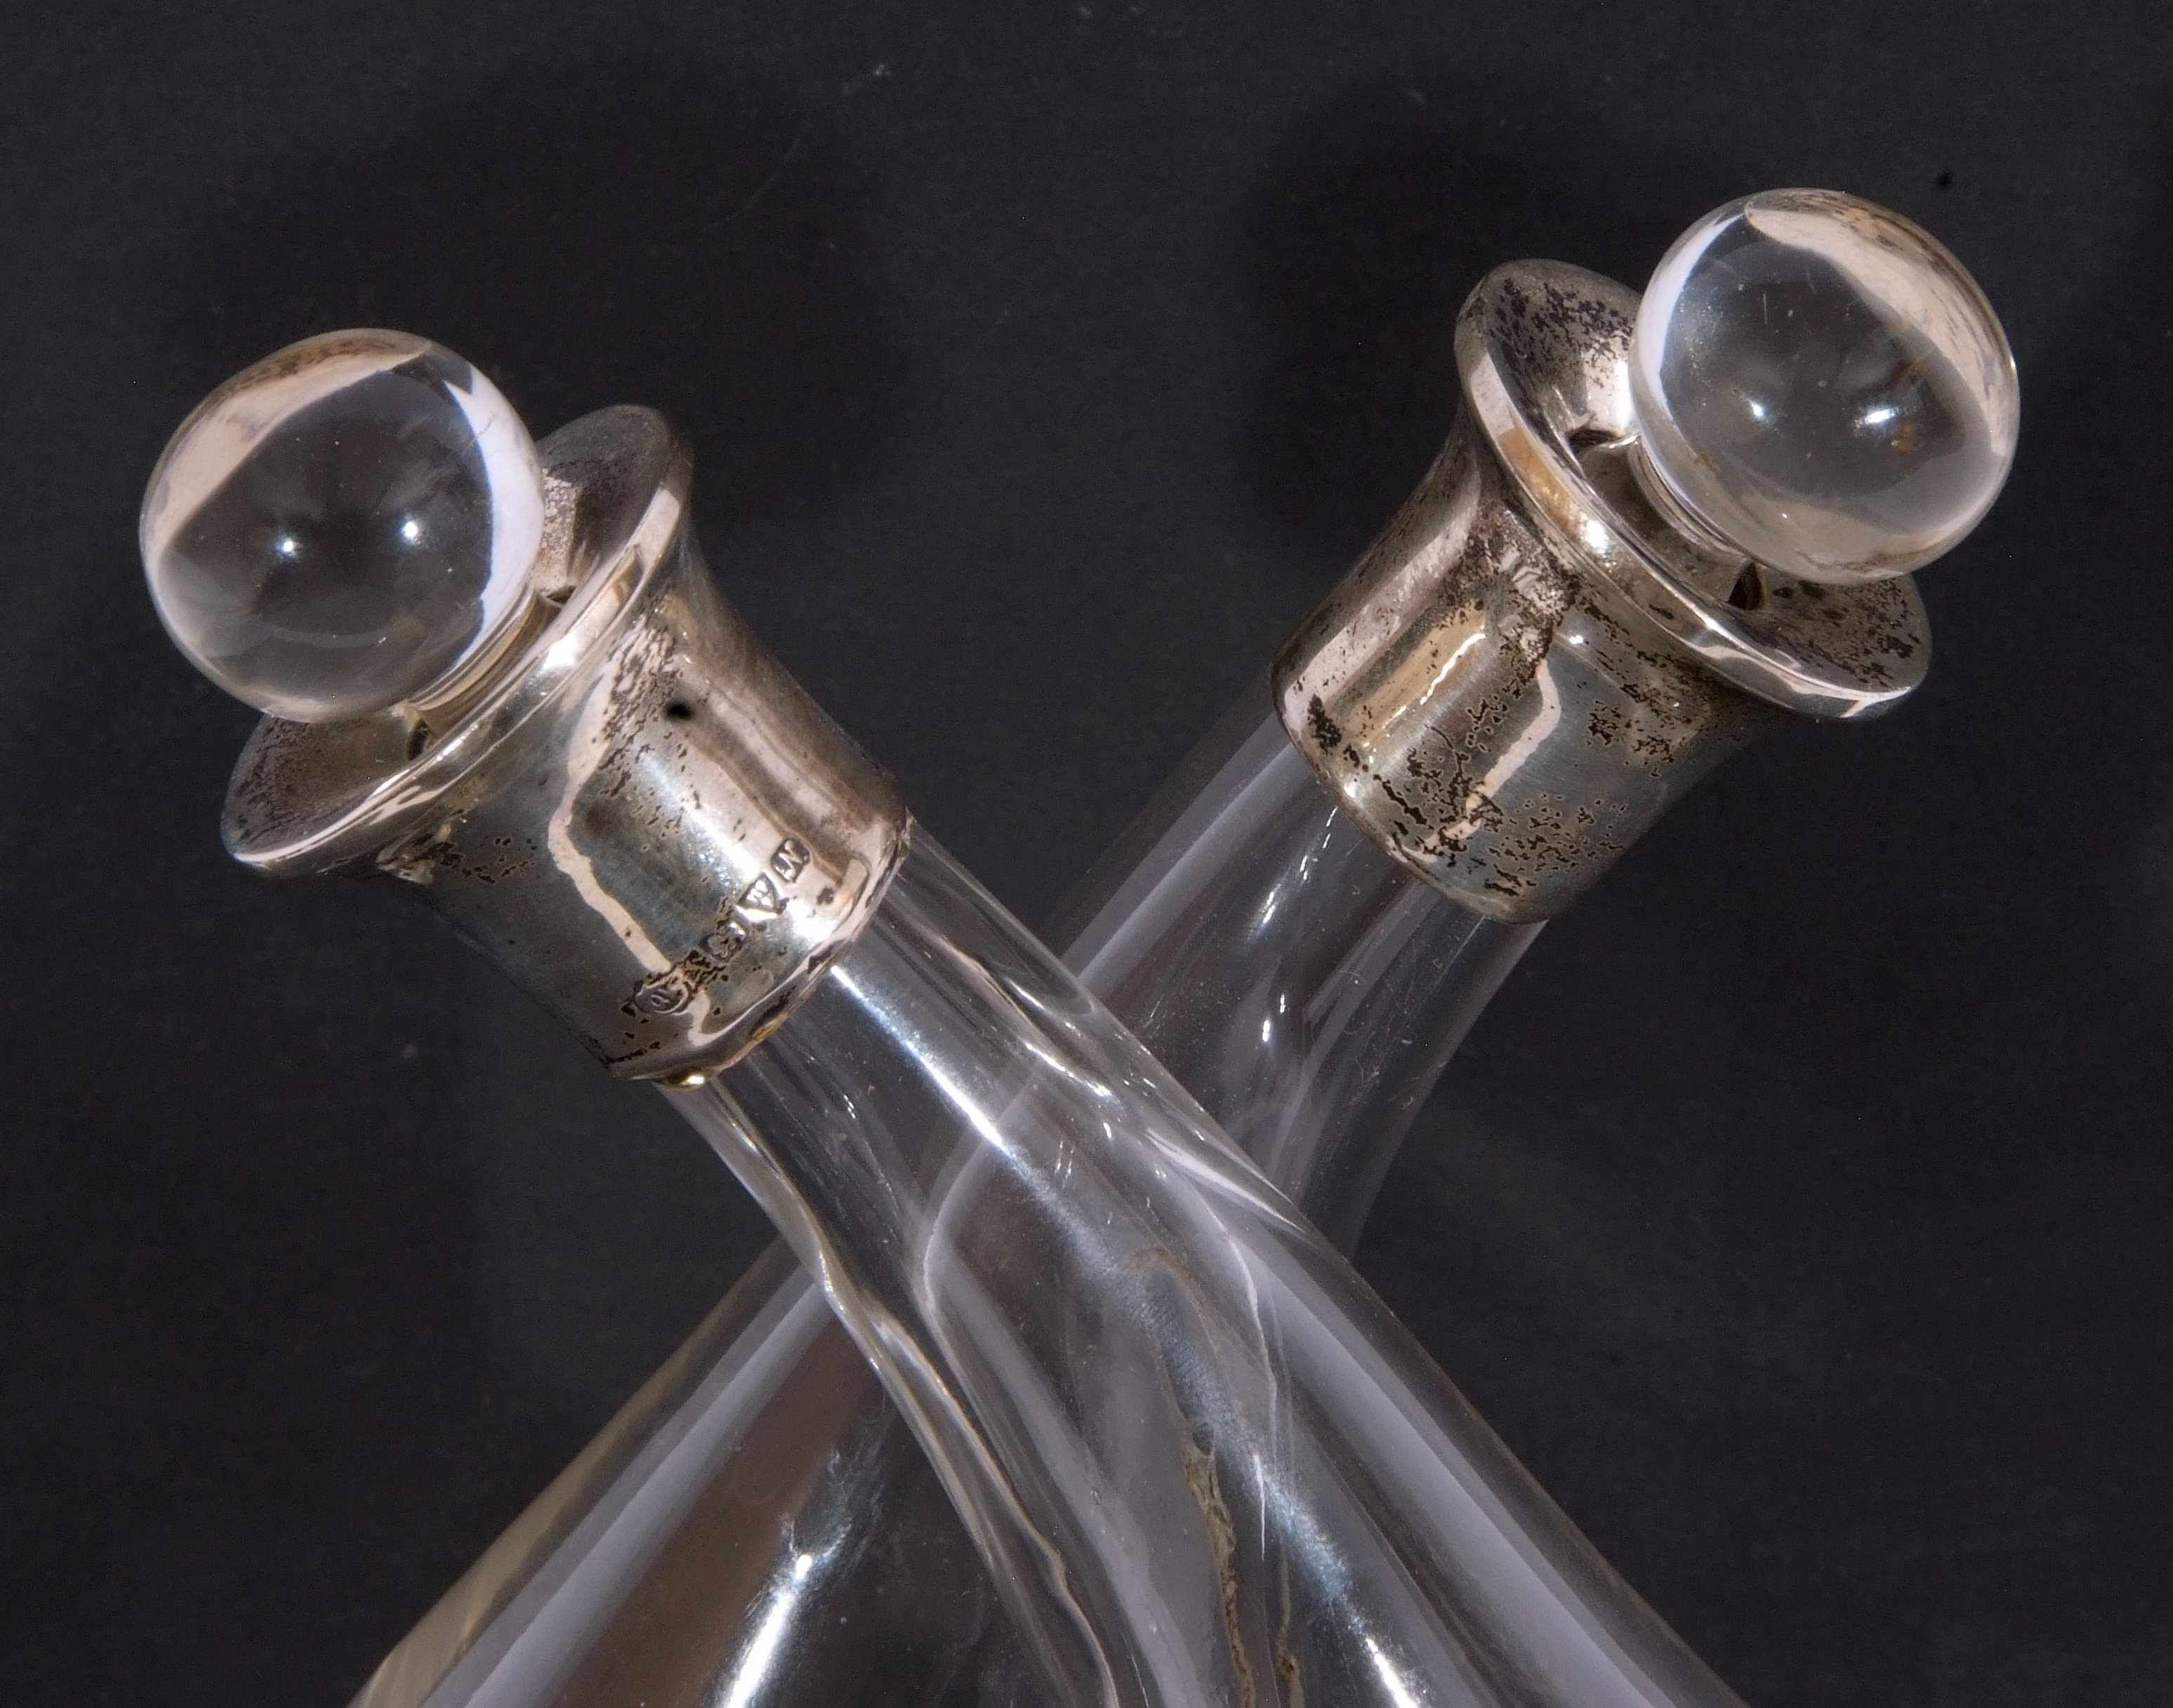 Silver mounted double vinegar and oil bottle, formed as two aubergine shaped glass bottles with - Image 7 of 7